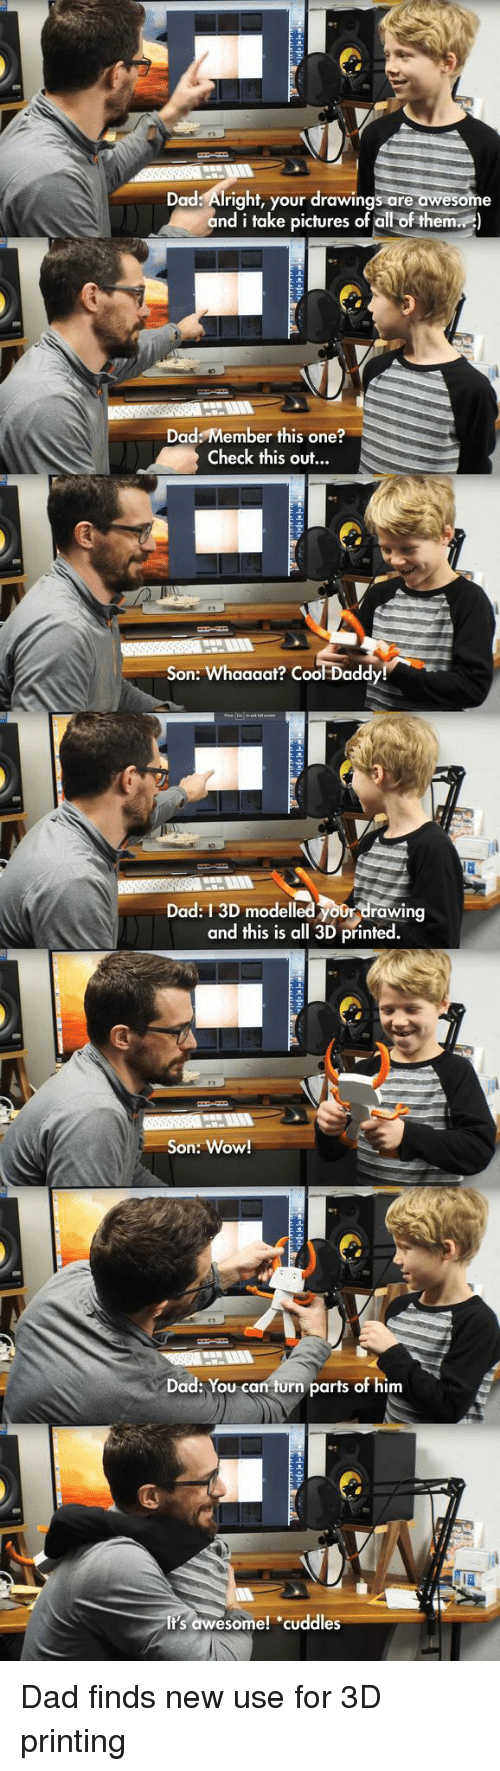 Dad, Wow, and Cool: Dad: Alright, your drawings are awesome  and i take pictures of all of them)  Dad: Member this one?  Check this out...  Son: Whaaaat? Cool Dadd  Dad: 13D modelled your drawing  and this is all 3D printed.  Son: Wow!  Dad: You can turn parts of him  Its awesome! cuddles <p>Dad finds new use for 3D printing</p>